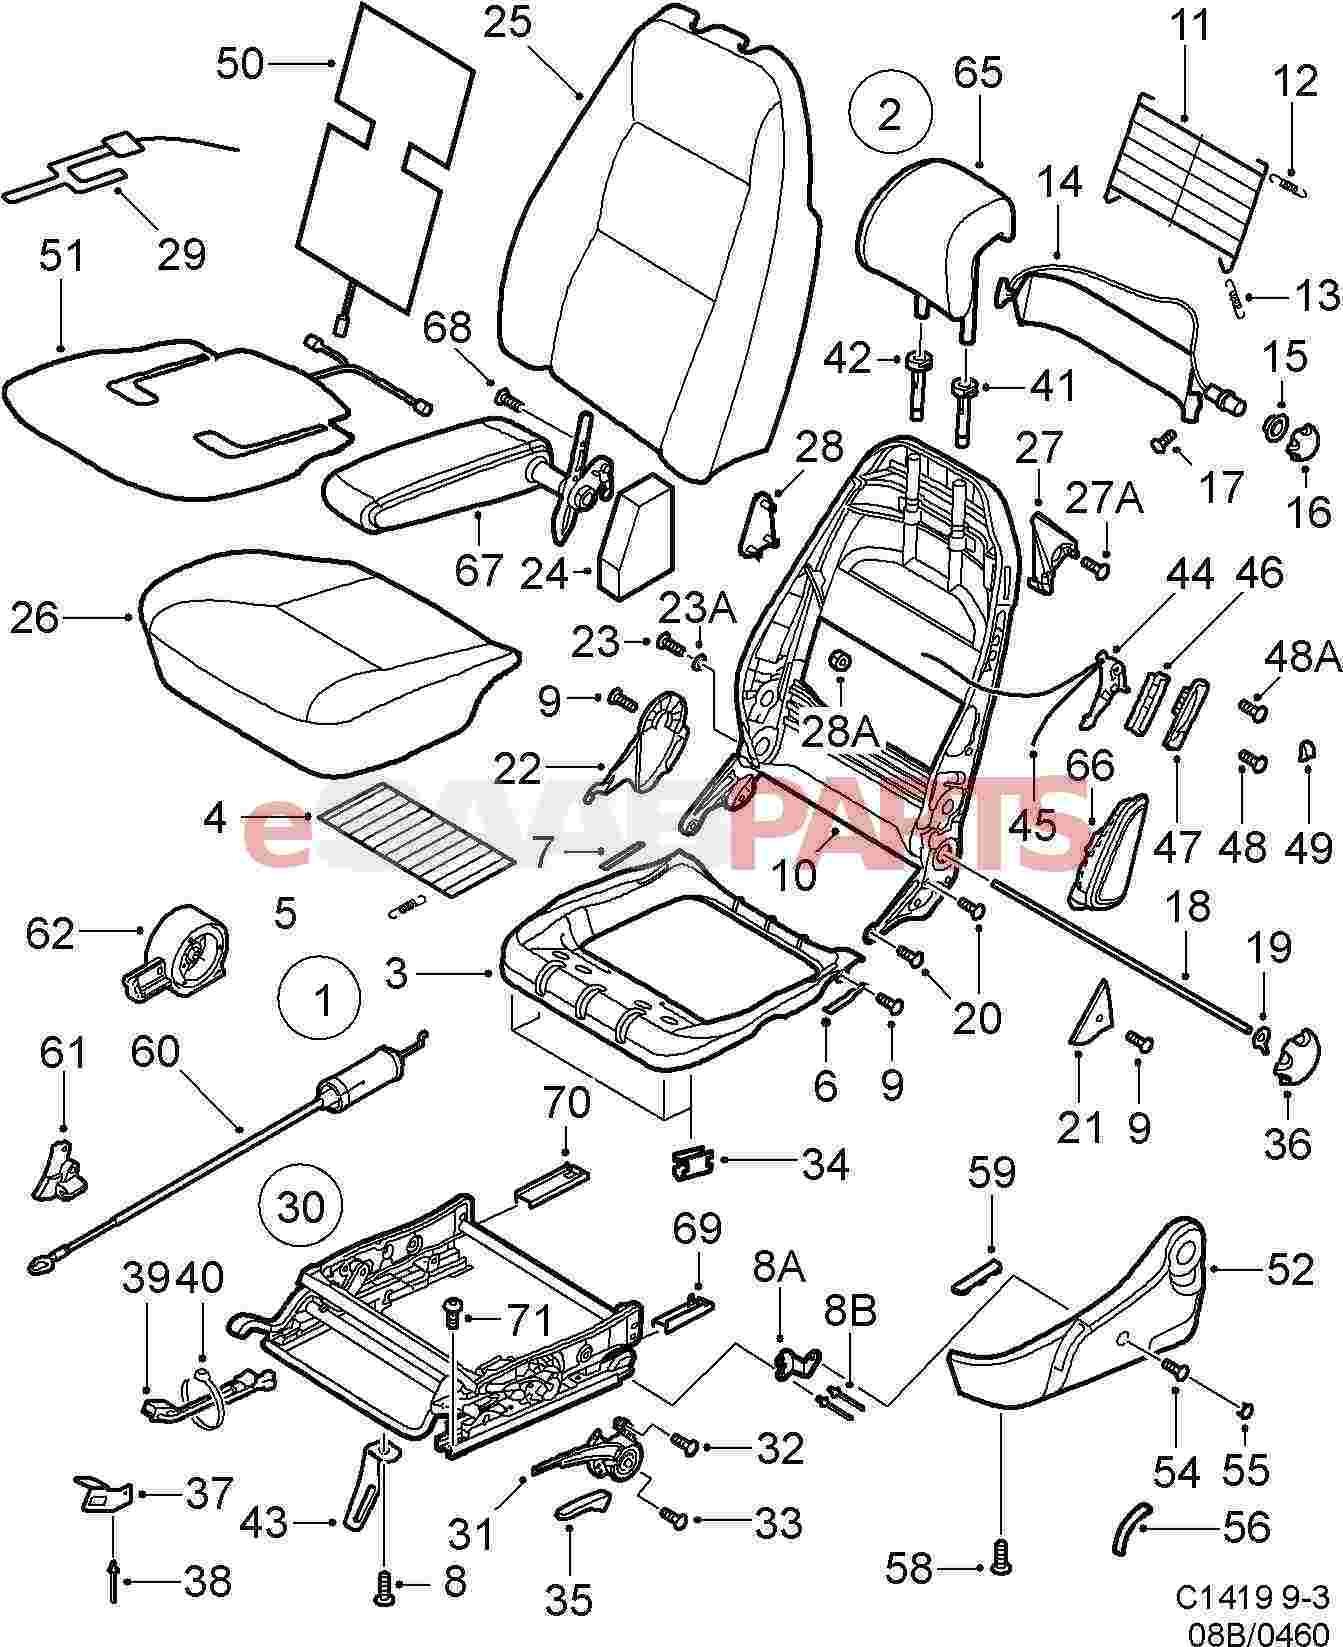 Saab 9 3 Seat Diagram Great Design Of Wiring Heated Parts Interior Html Imageresizertool Com 2005